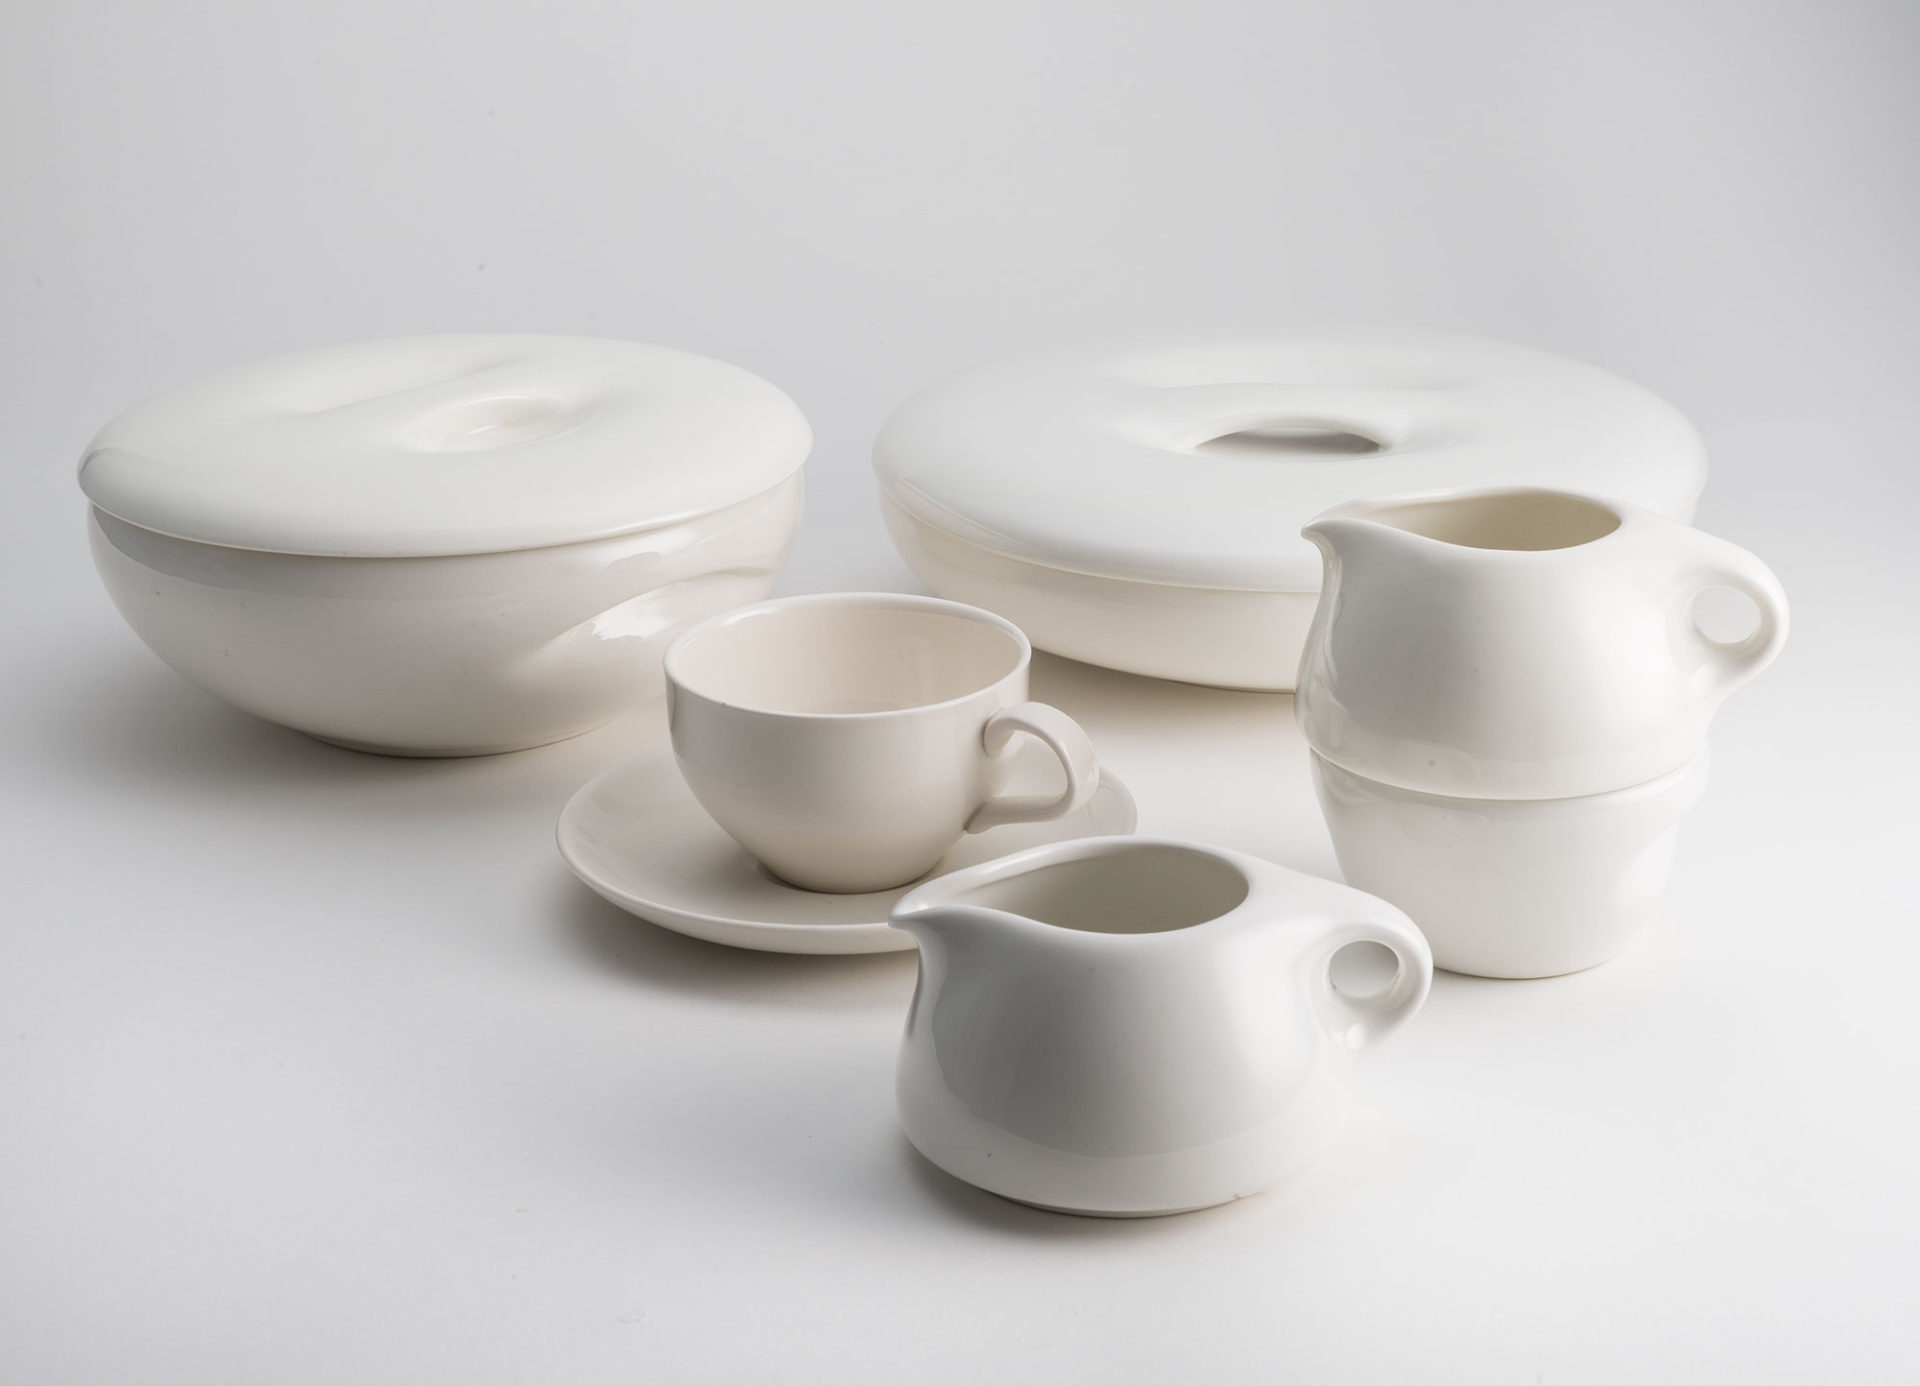 Set of white ceramic dishes. Two bowls, one shallower than the other, each have lids with indentations for handles. One stacking sugar bowl and creamer; one creamer, and one teacup and saucer.